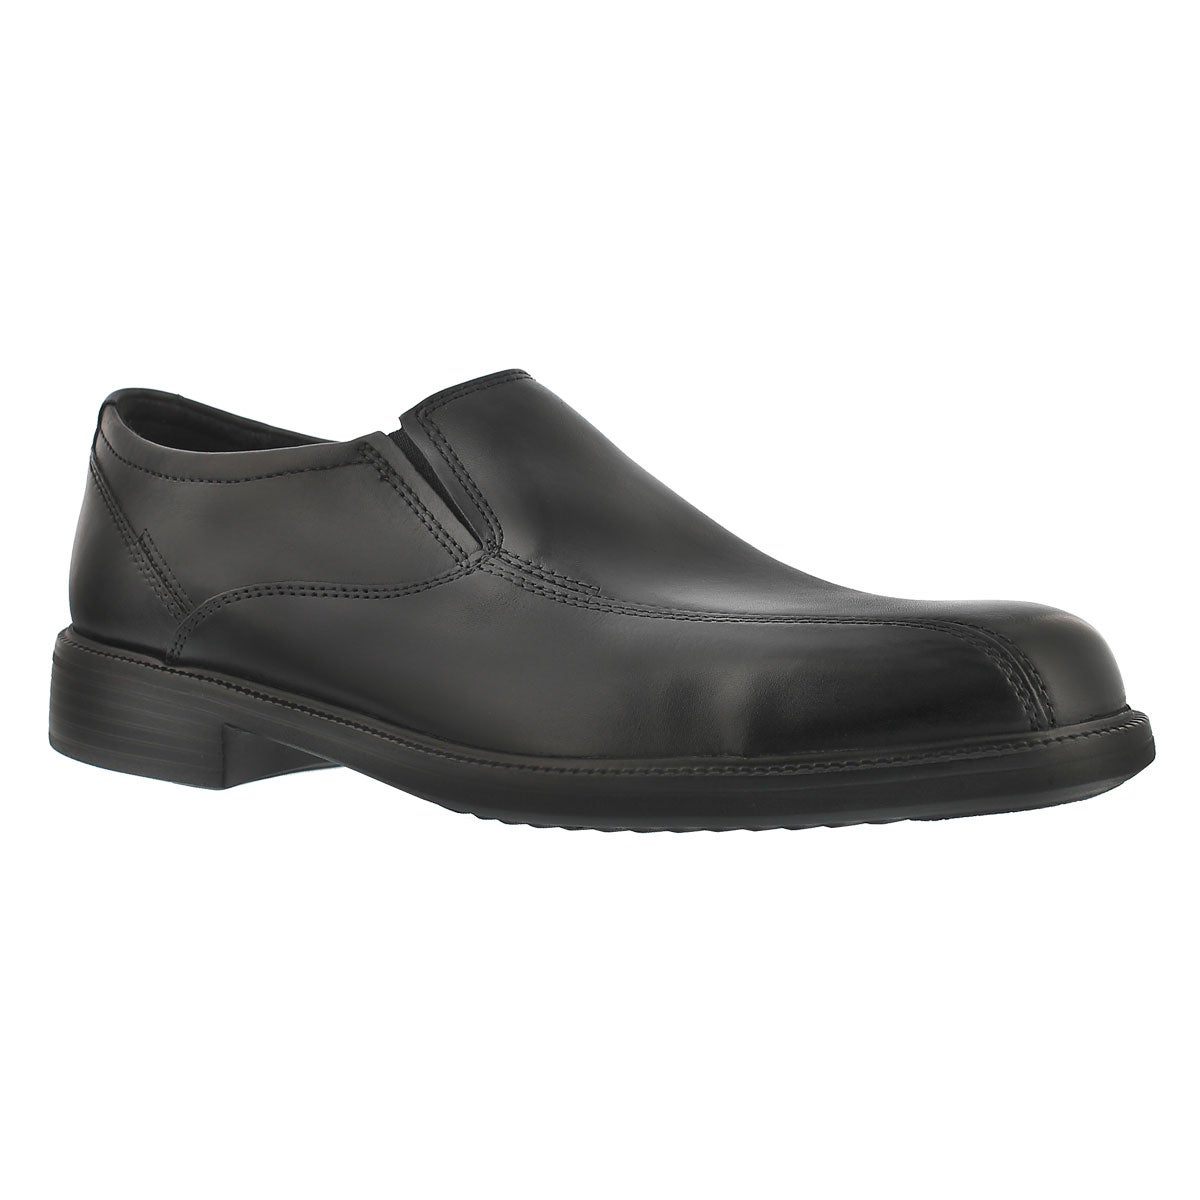 Men's BARDWELL STEP black slip on dress shoes